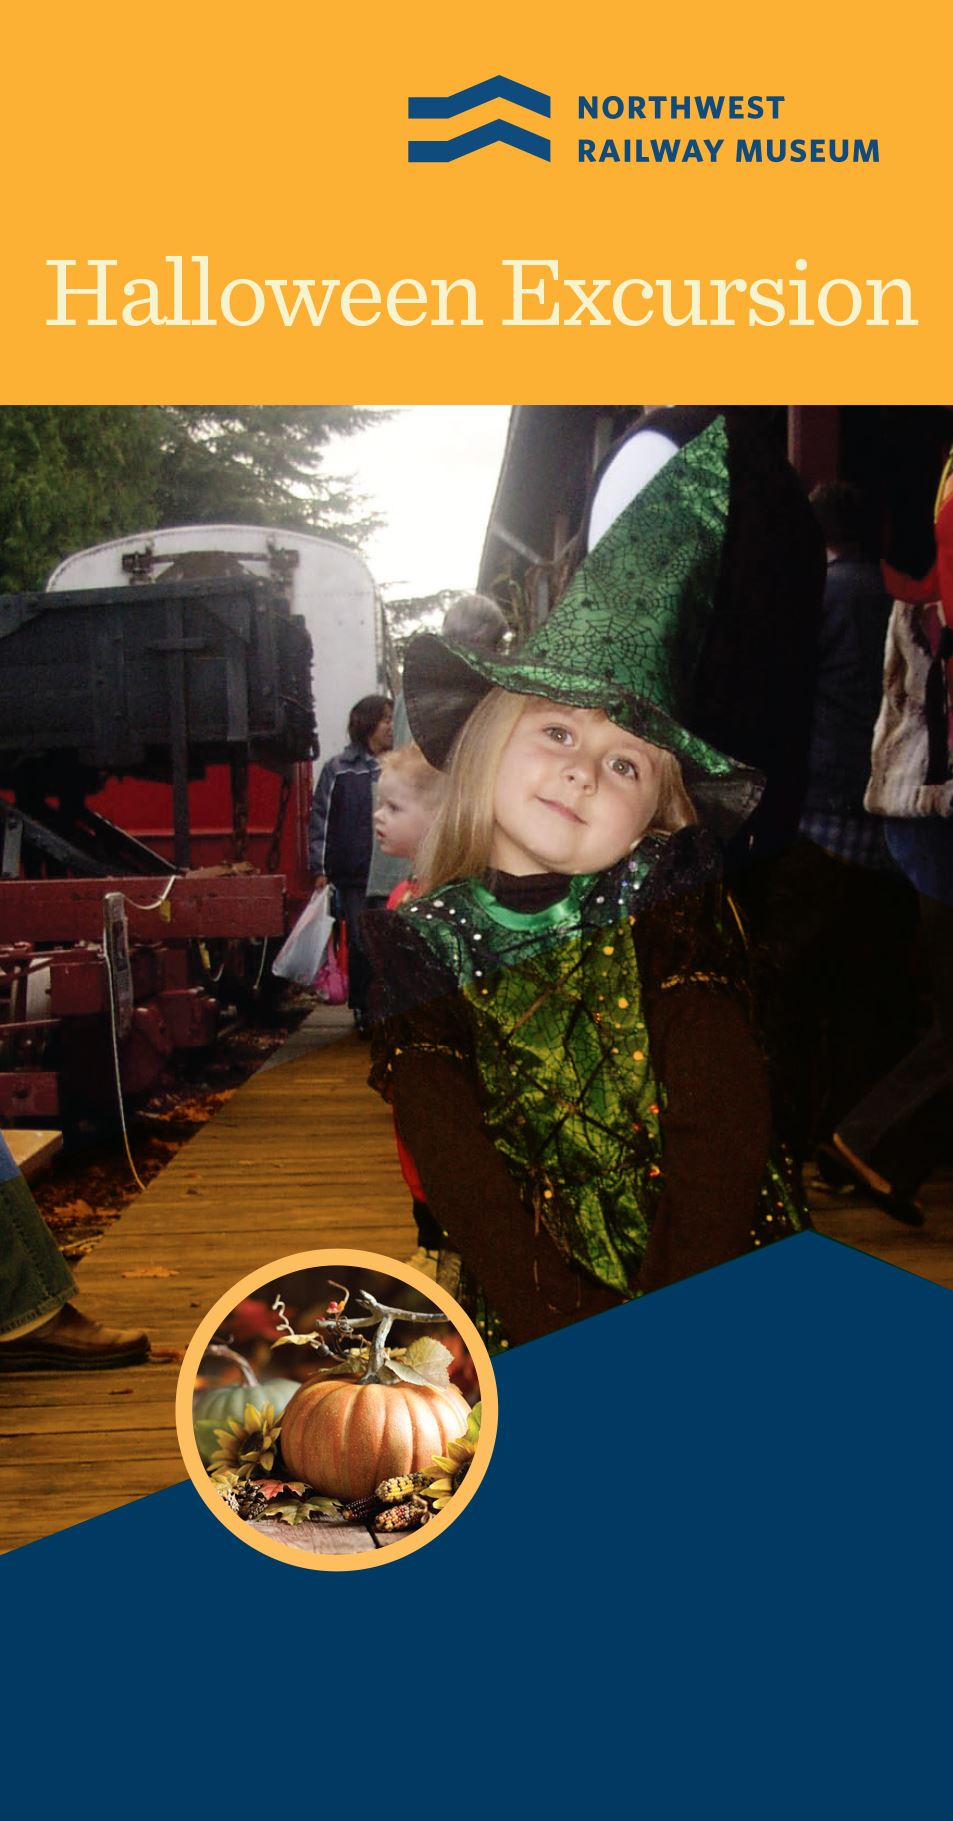 This is a picture of a little girl on a train dressed up as a witch.